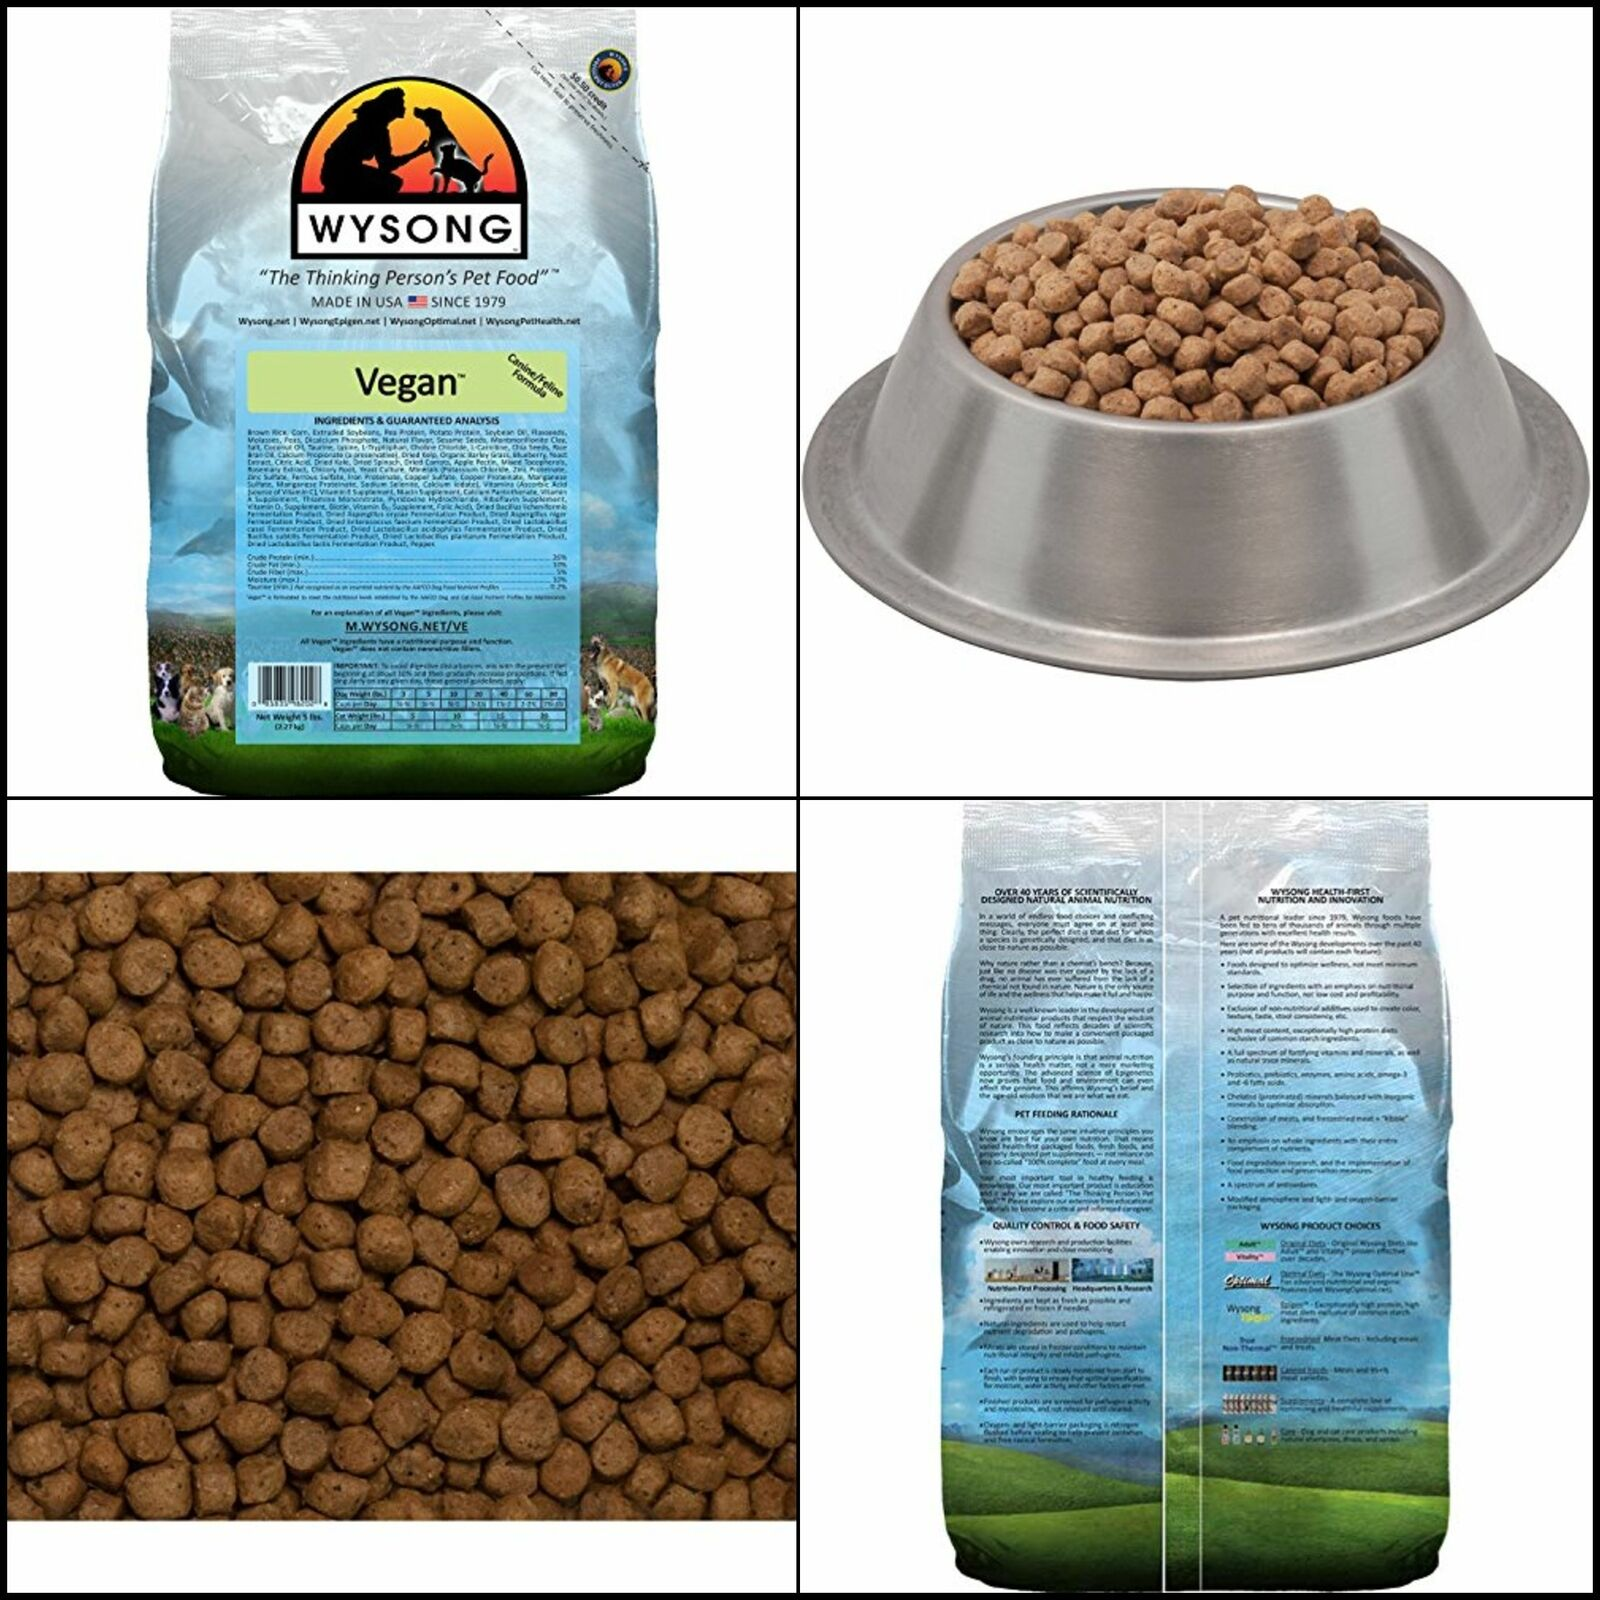 5 Lbs Bag Wysong Vegan Feline/canine Formula Dry Dog/cat Food Contains Flaxseeds